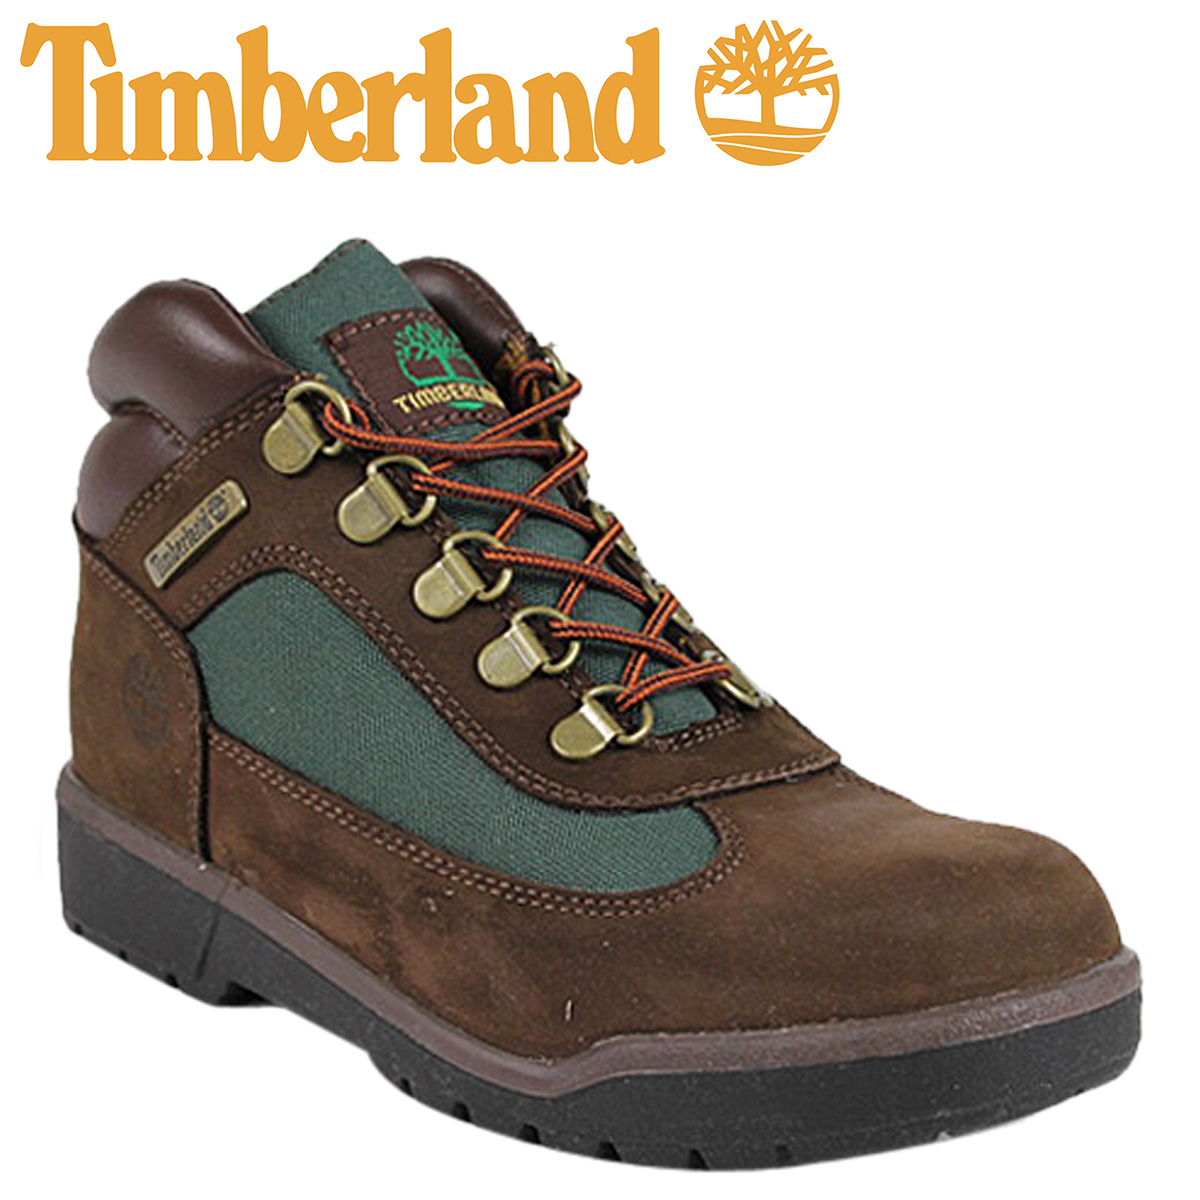 80337dba34a Timberland field boots 16937 Timberland Field Boot nubuck leather junior  kids child ladies BROWN×OLIVE ...